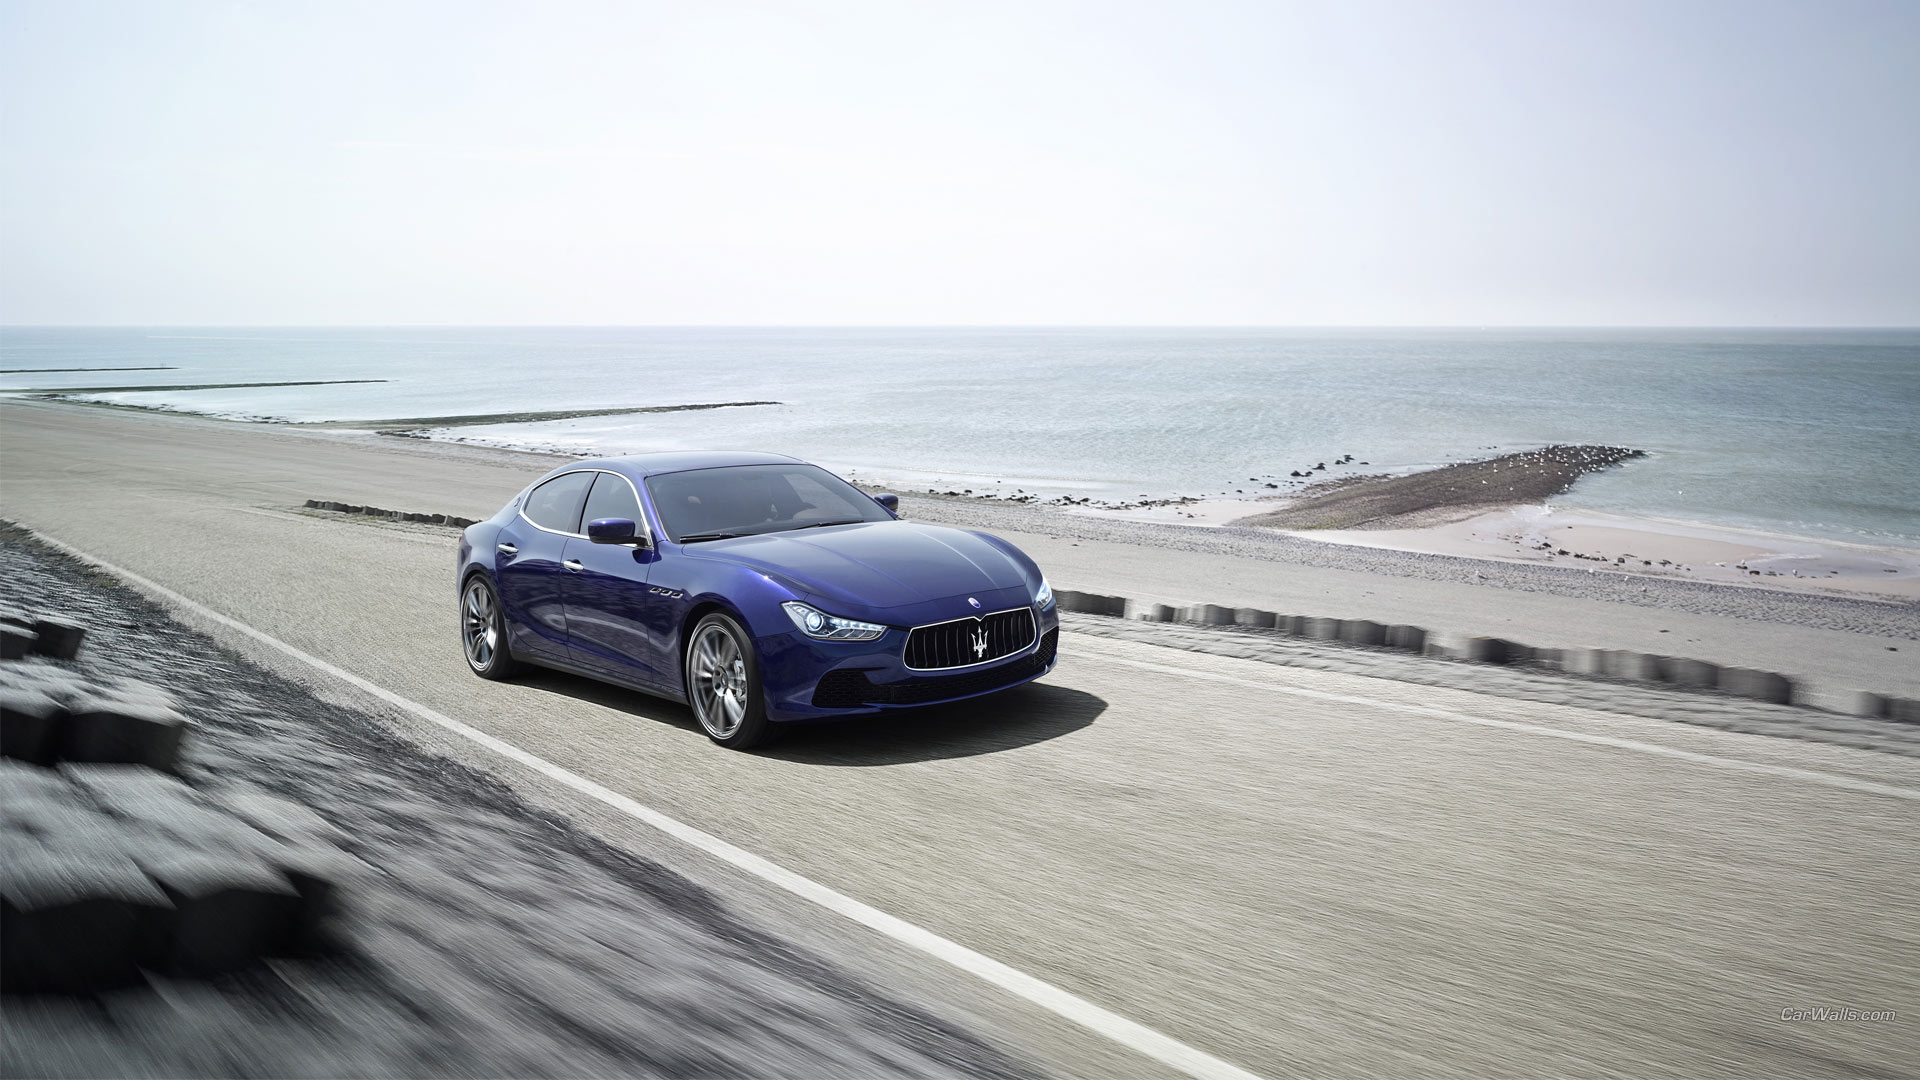 Maserati Ghibli Full HD Wallpaper And Background Image